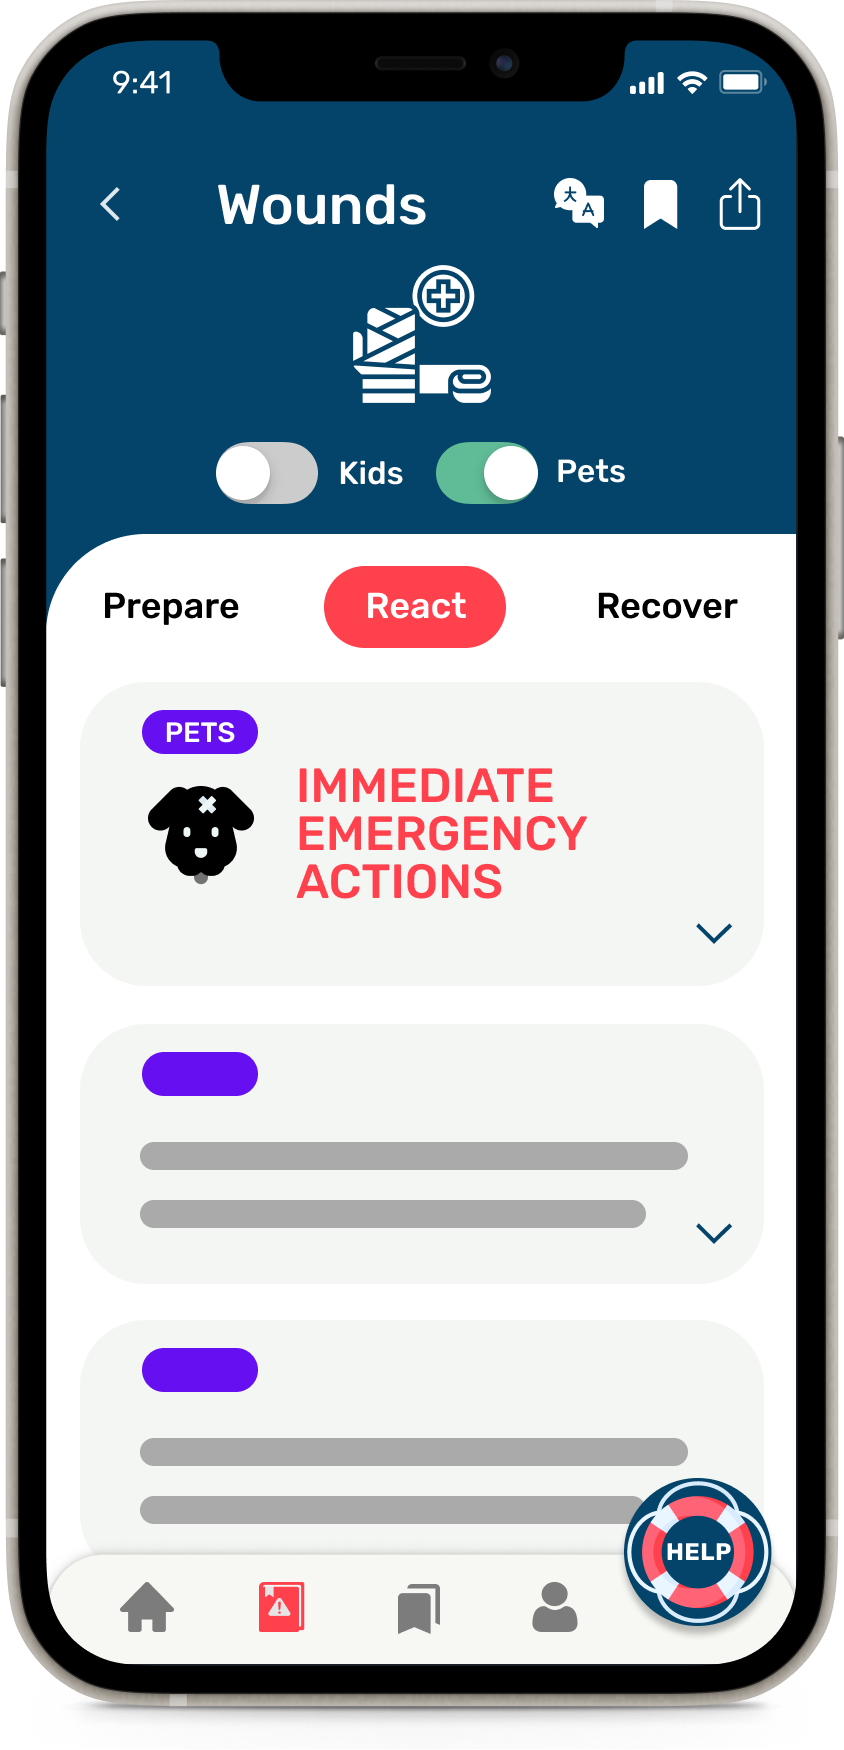 A phone showing the Wounds hazard in the HazAdapt app with the Pets toggle enabled and pet-specific information visible.